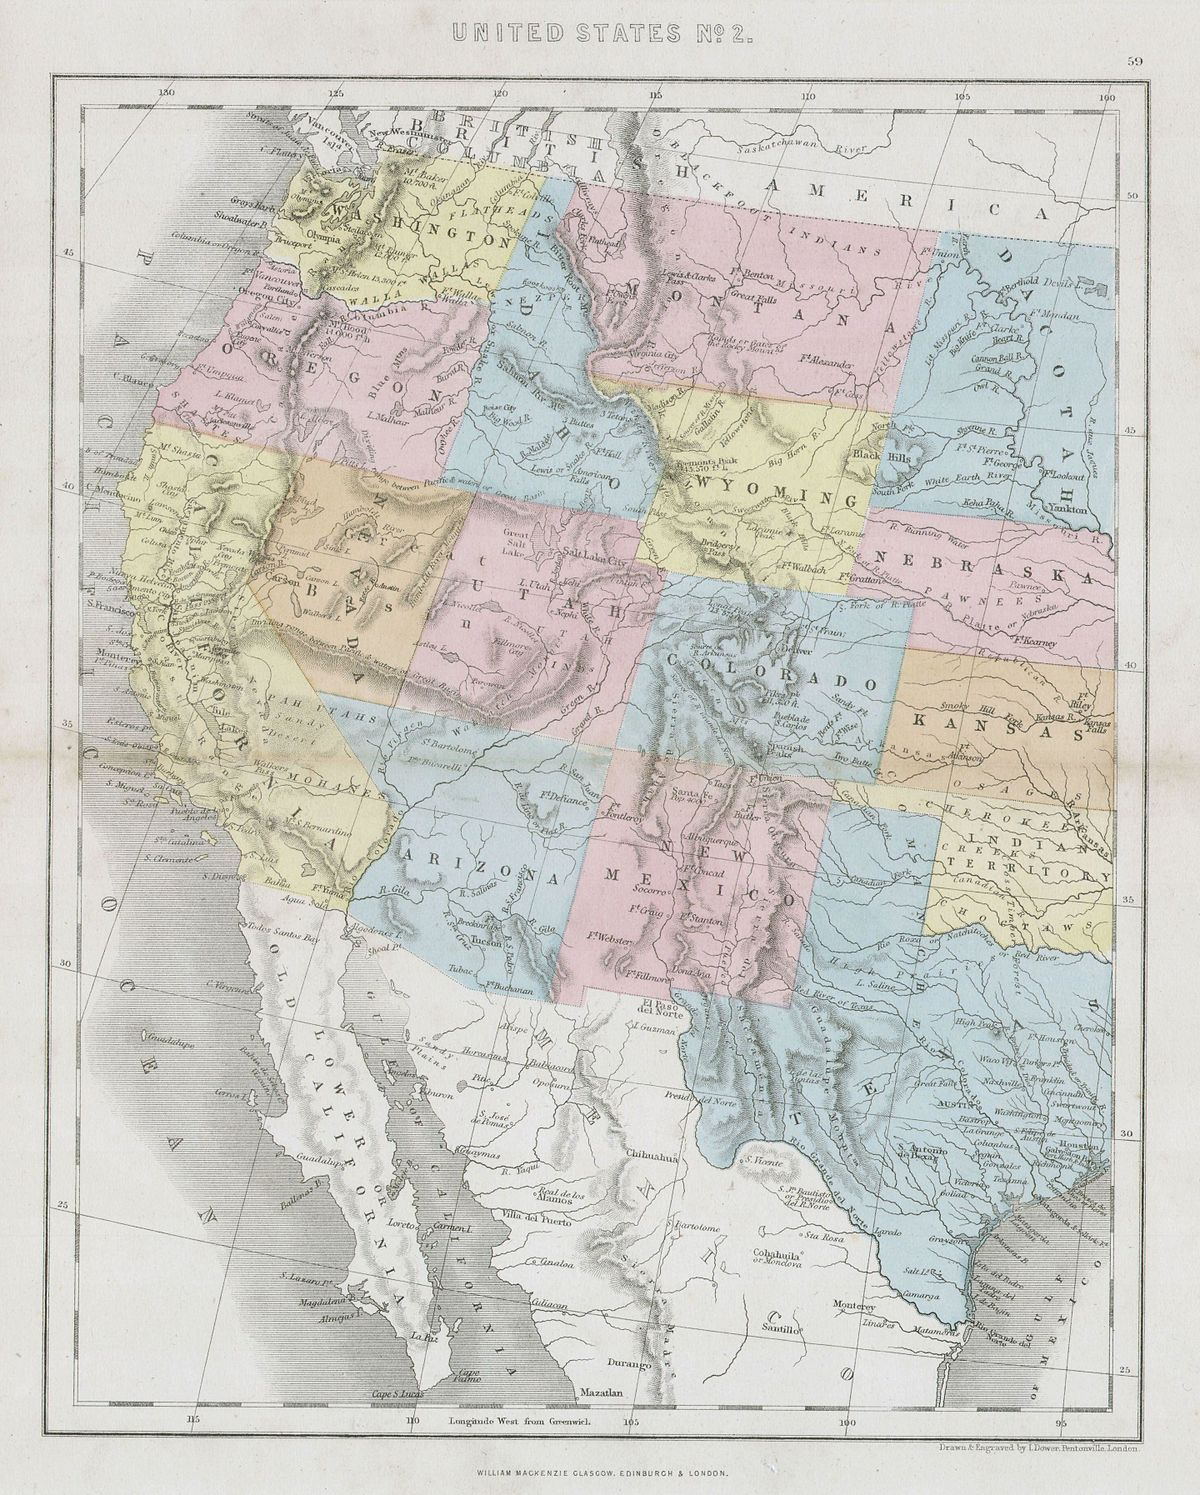 Timeline Of The American Old West Wikipedia - 1800s us mid western states maps